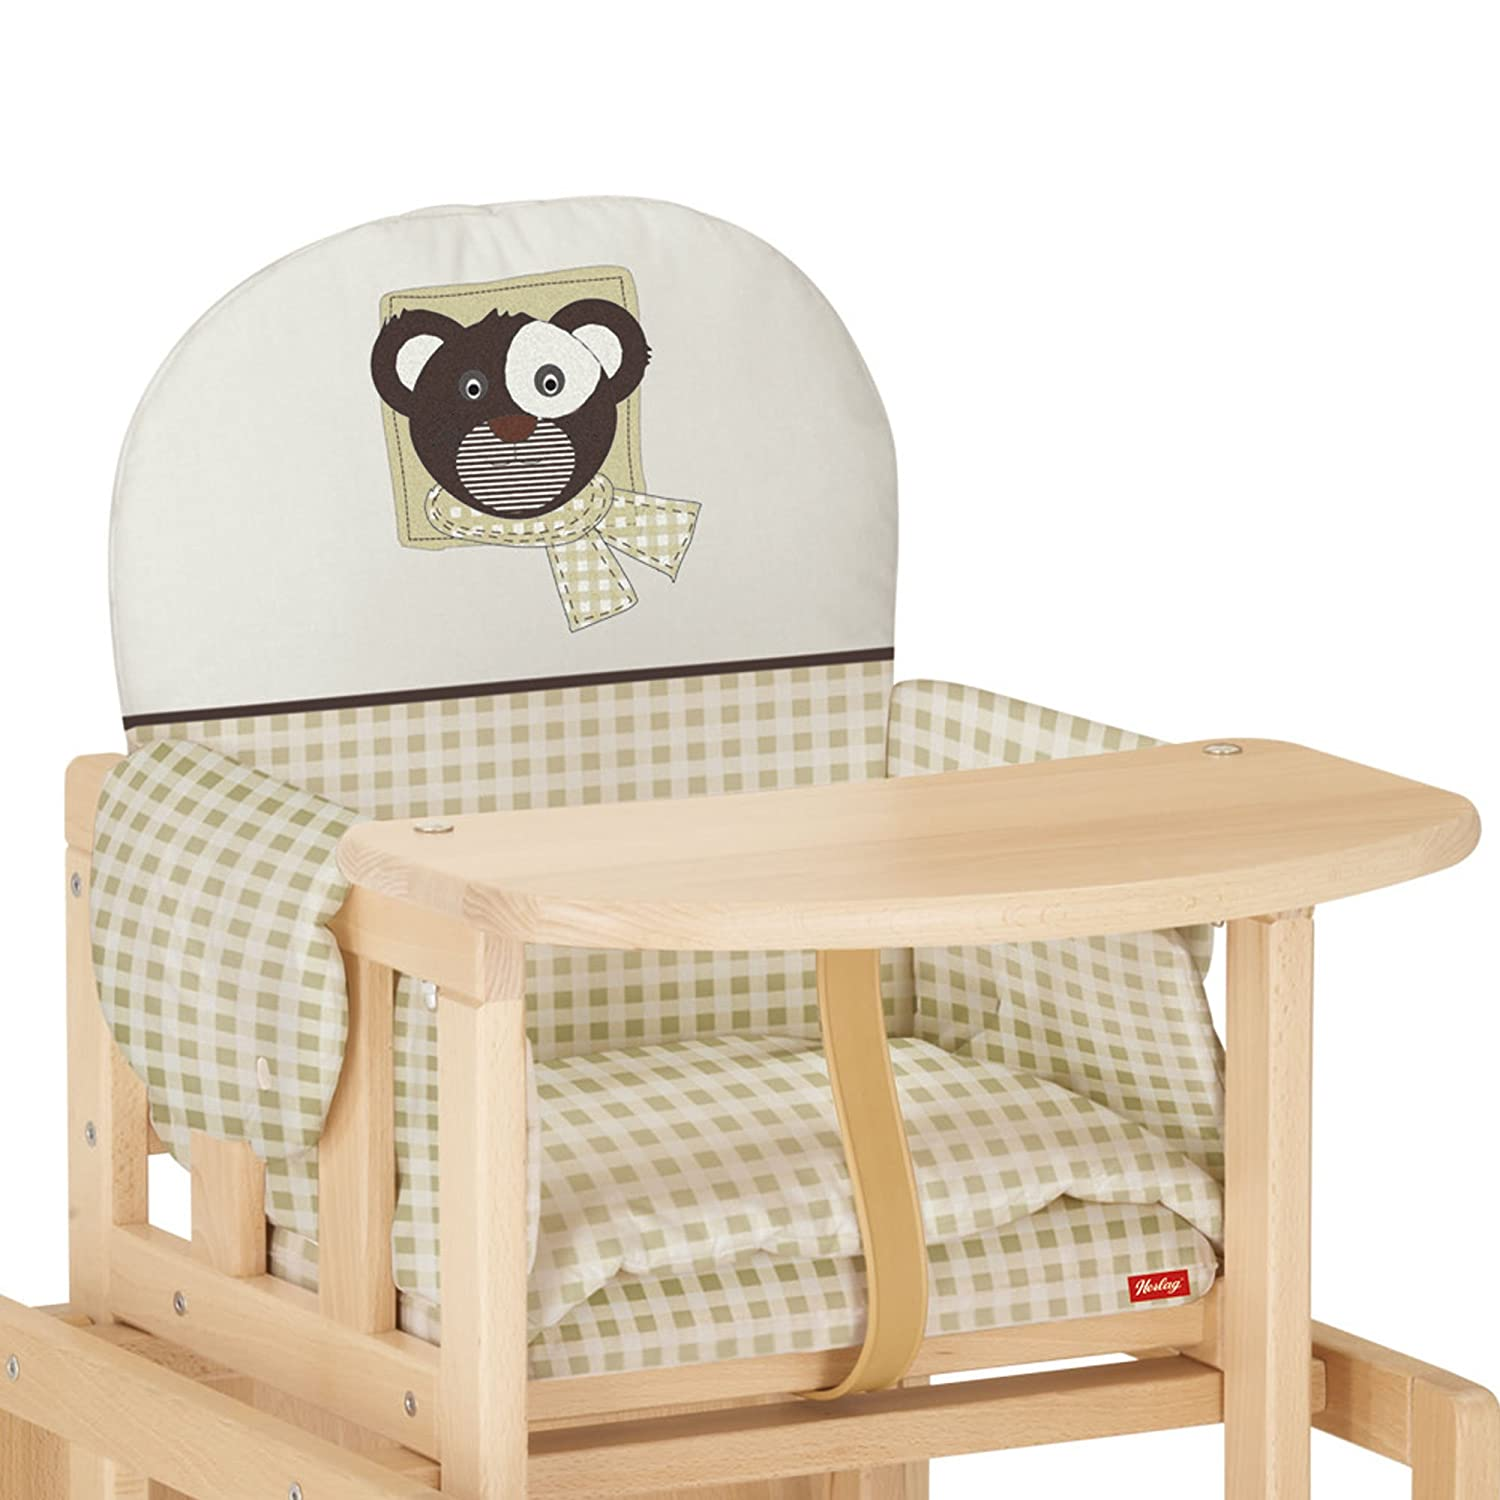 Sensational Herlag H5064 272 High Chair Booster Seat For Use With Tx Unemploymentrelief Wooden Chair Designs For Living Room Unemploymentrelieforg